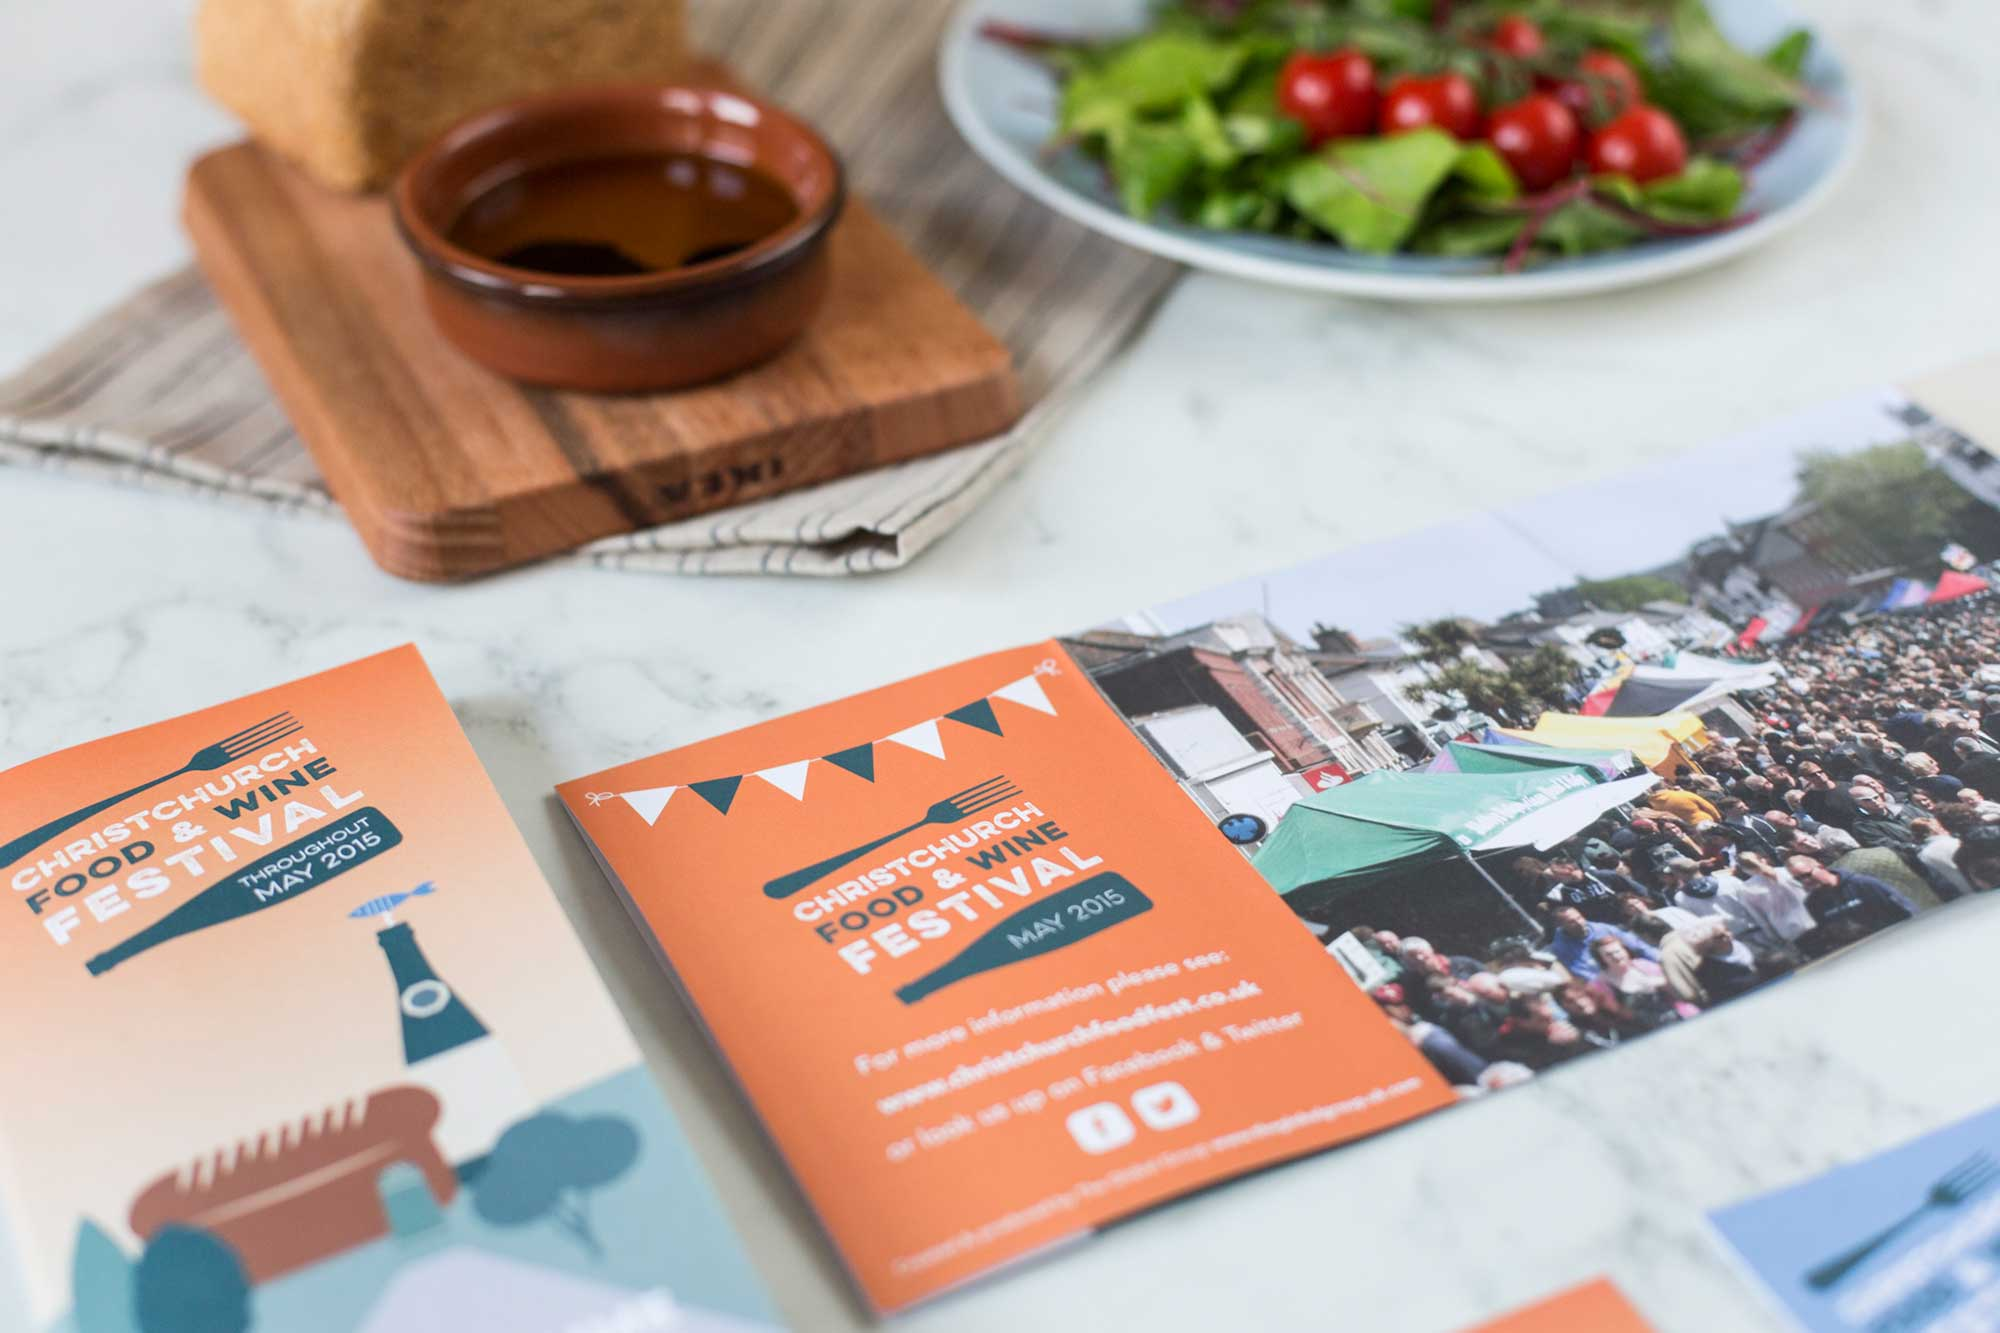 Branding design for Christchurch Food Festival